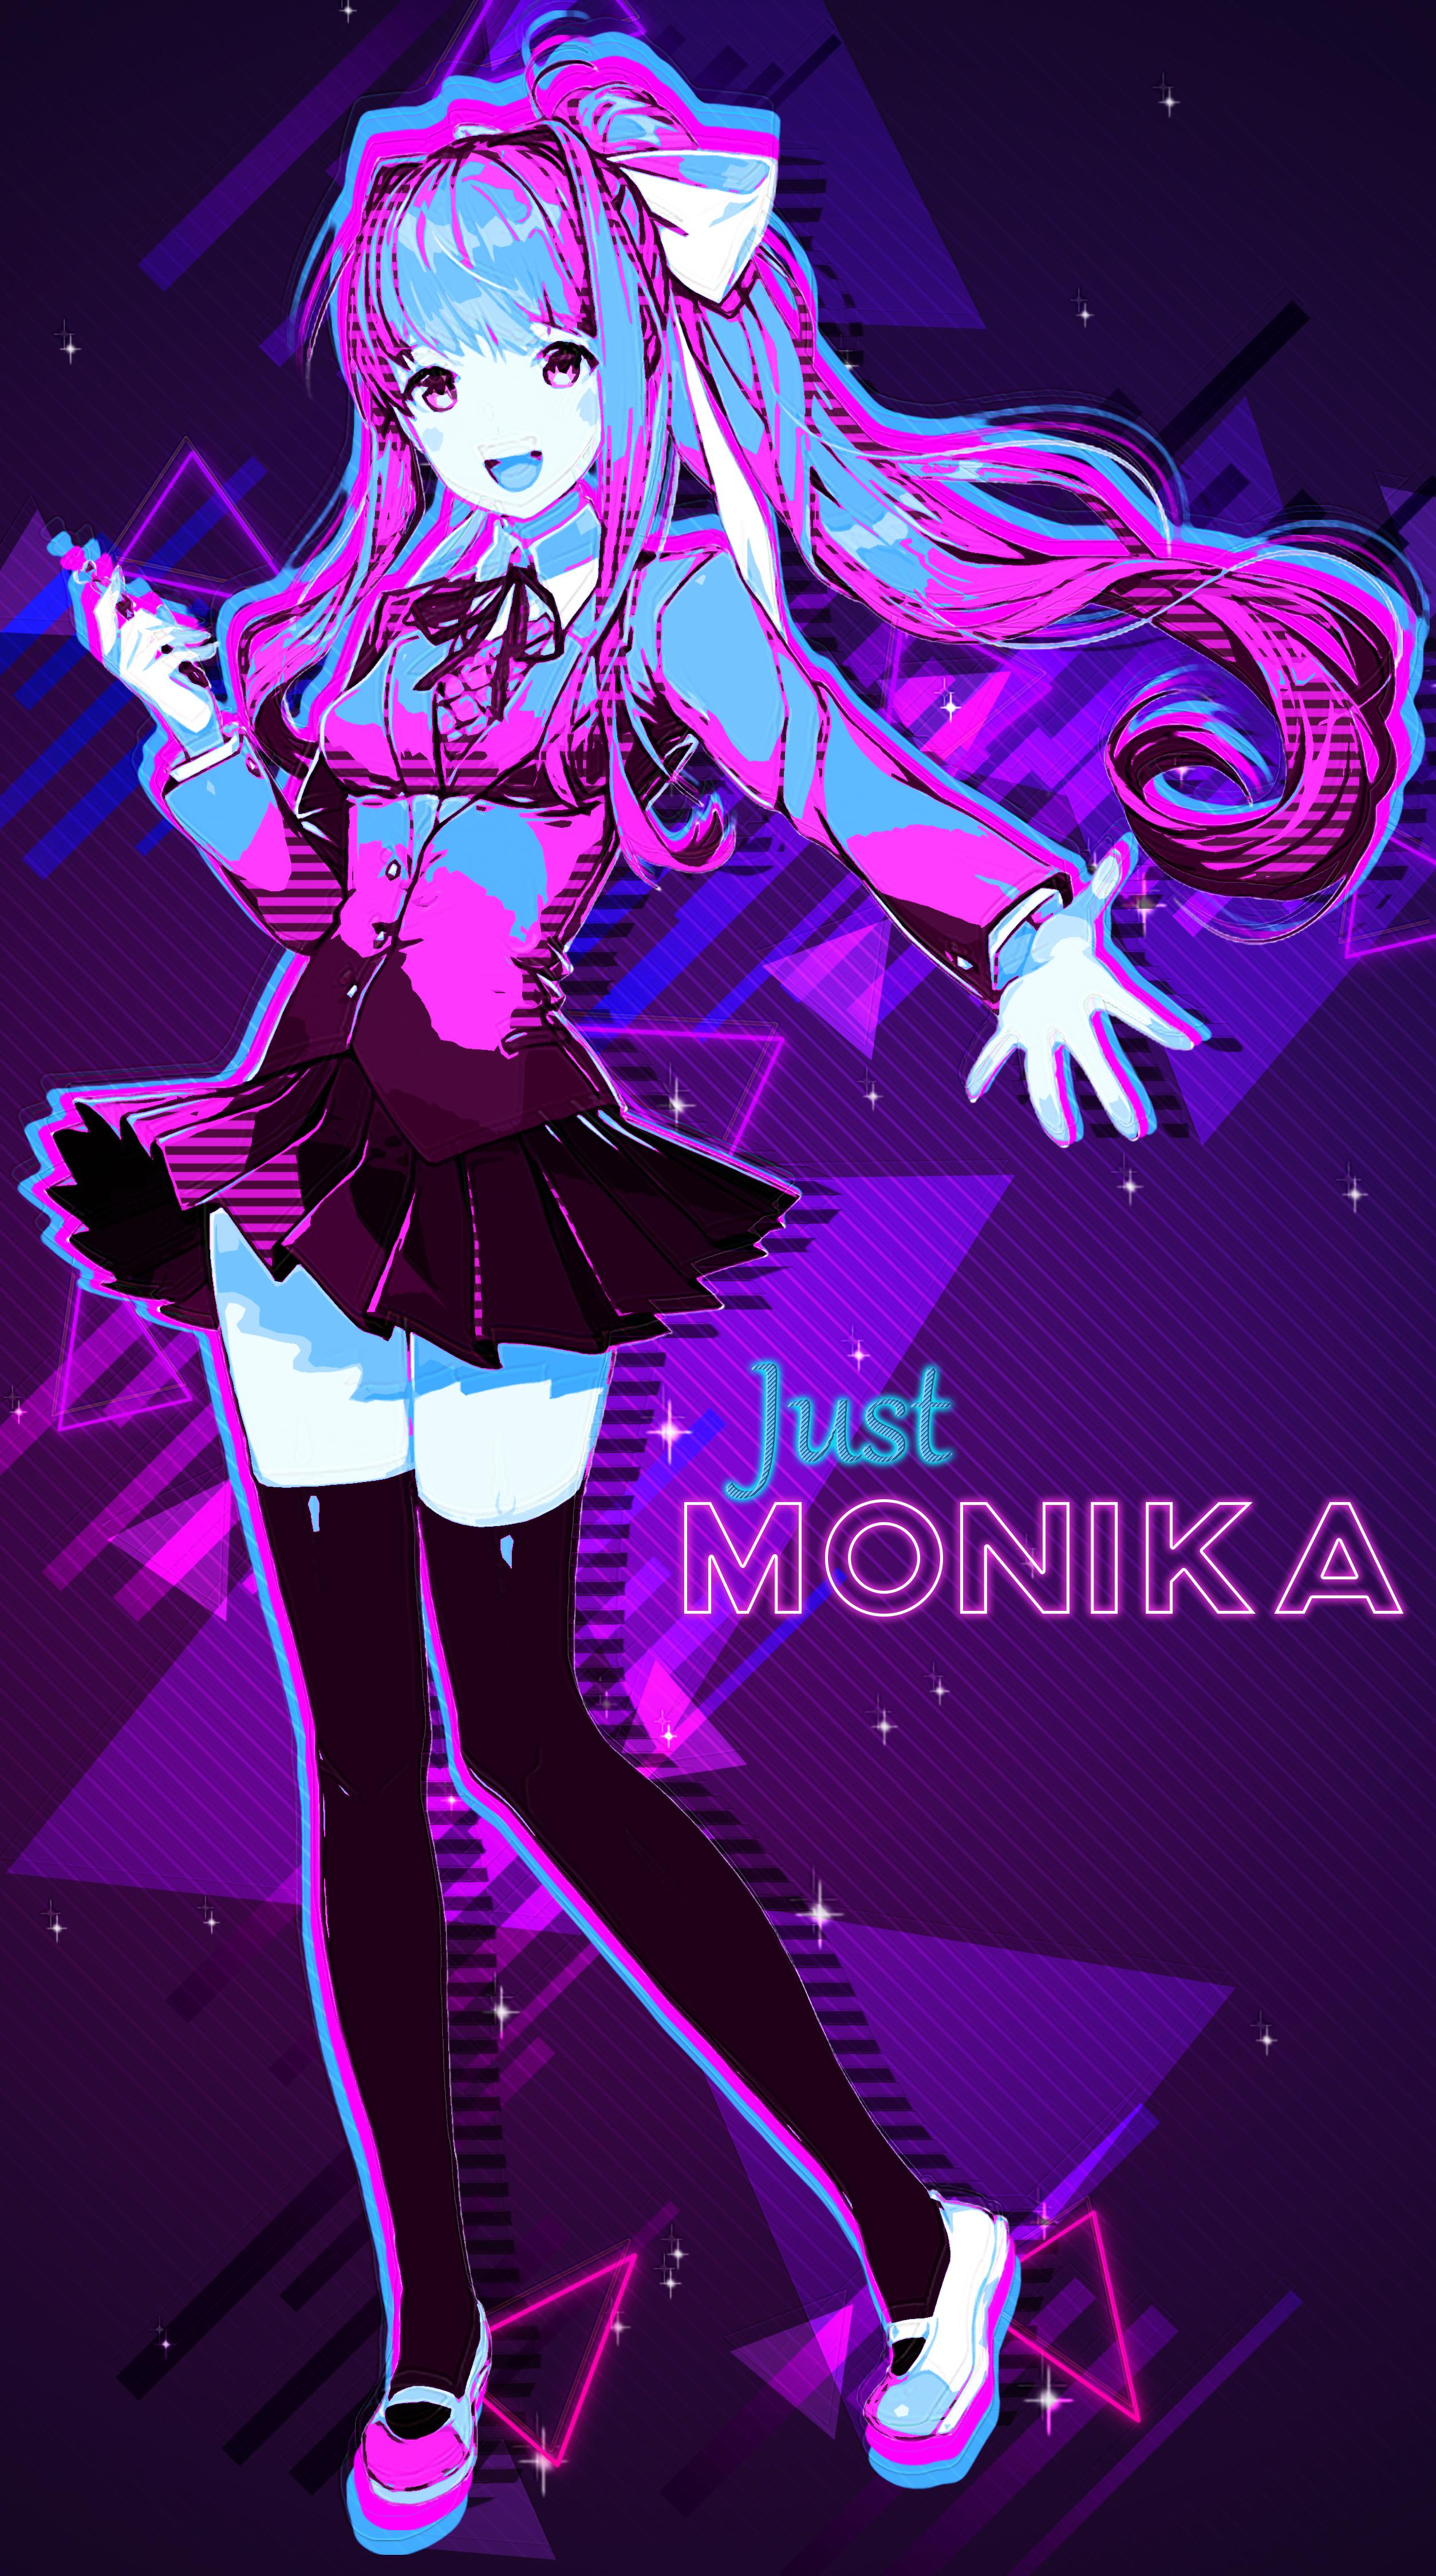 a very trippy 1980s monika wallpaper i made while messing around 2508x4500